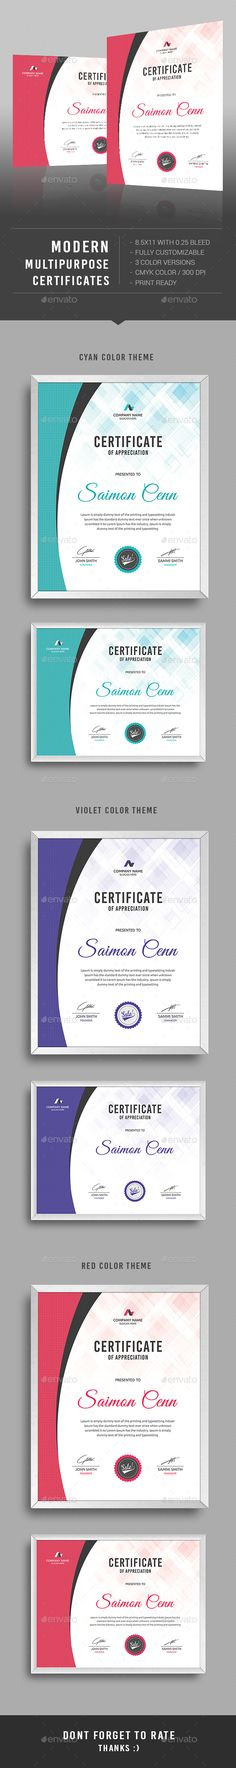 Certificate Psd templates, Certificate and Template - creative certificate designs